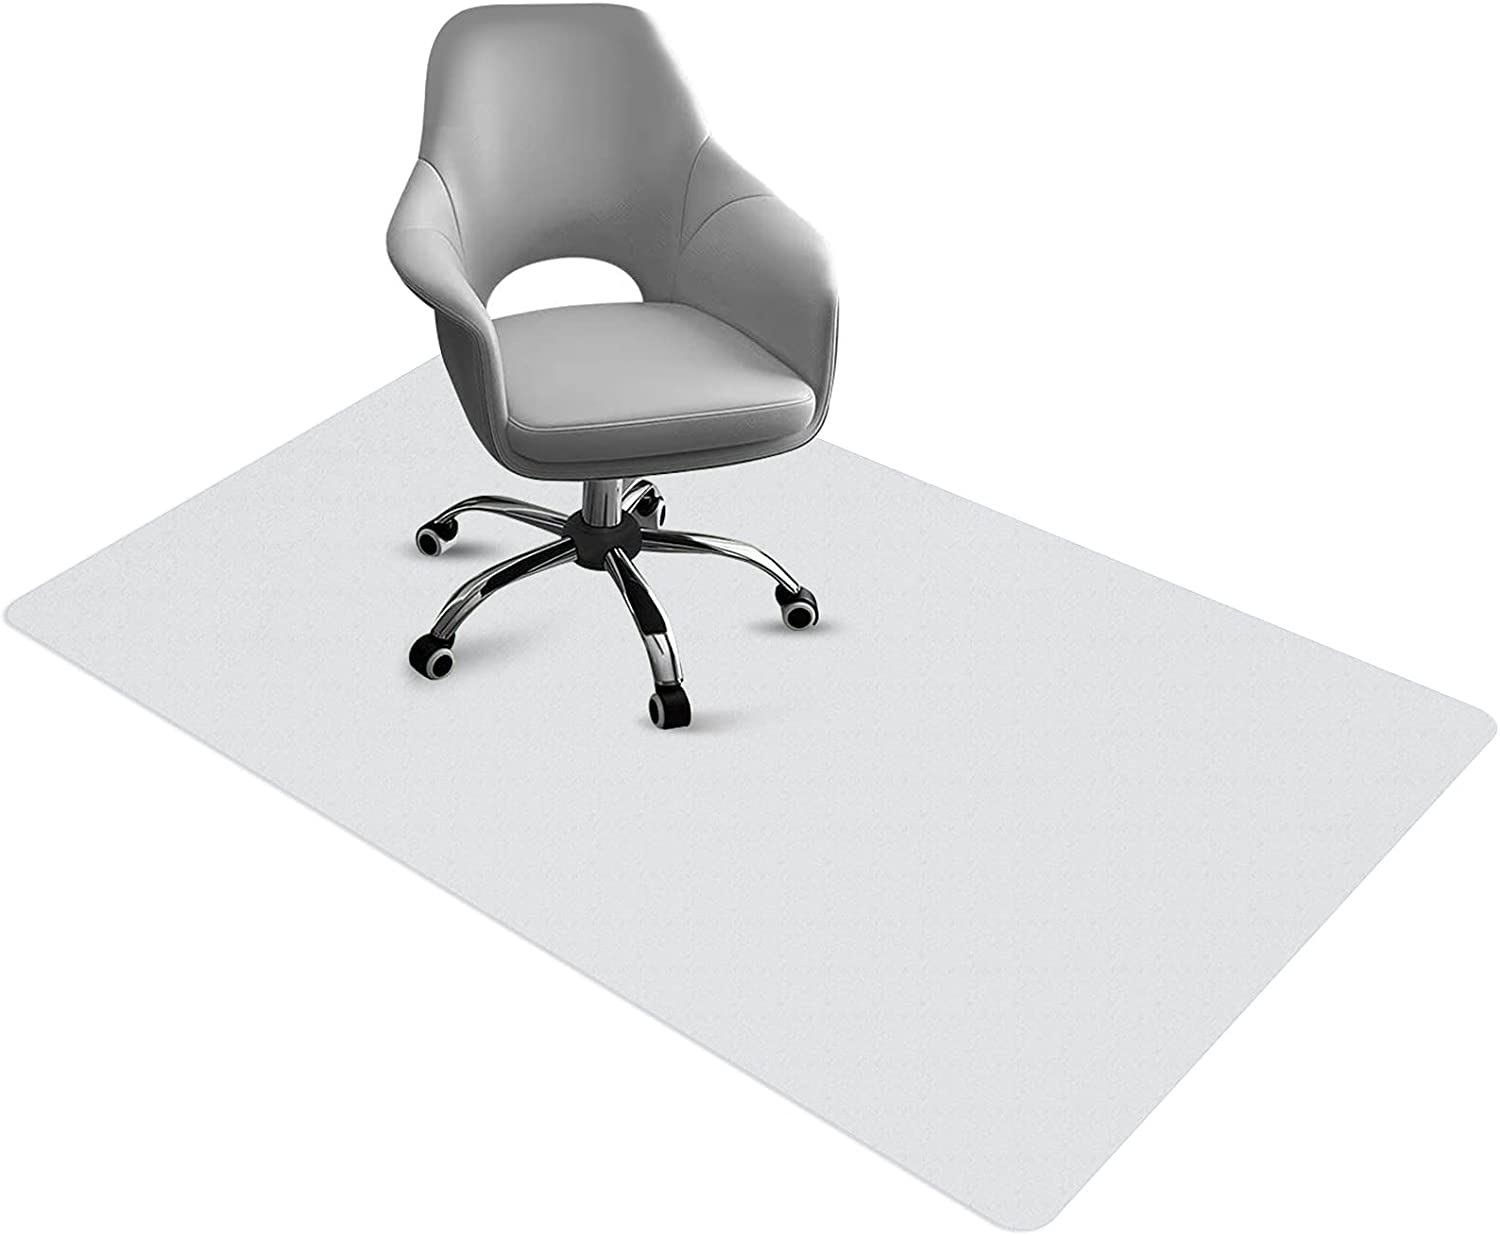 Chair Mat for Hard Floors Office Floor Mat PVC Transparent Office Computer Easy Glide for Chairs Non-Slip Durable 48